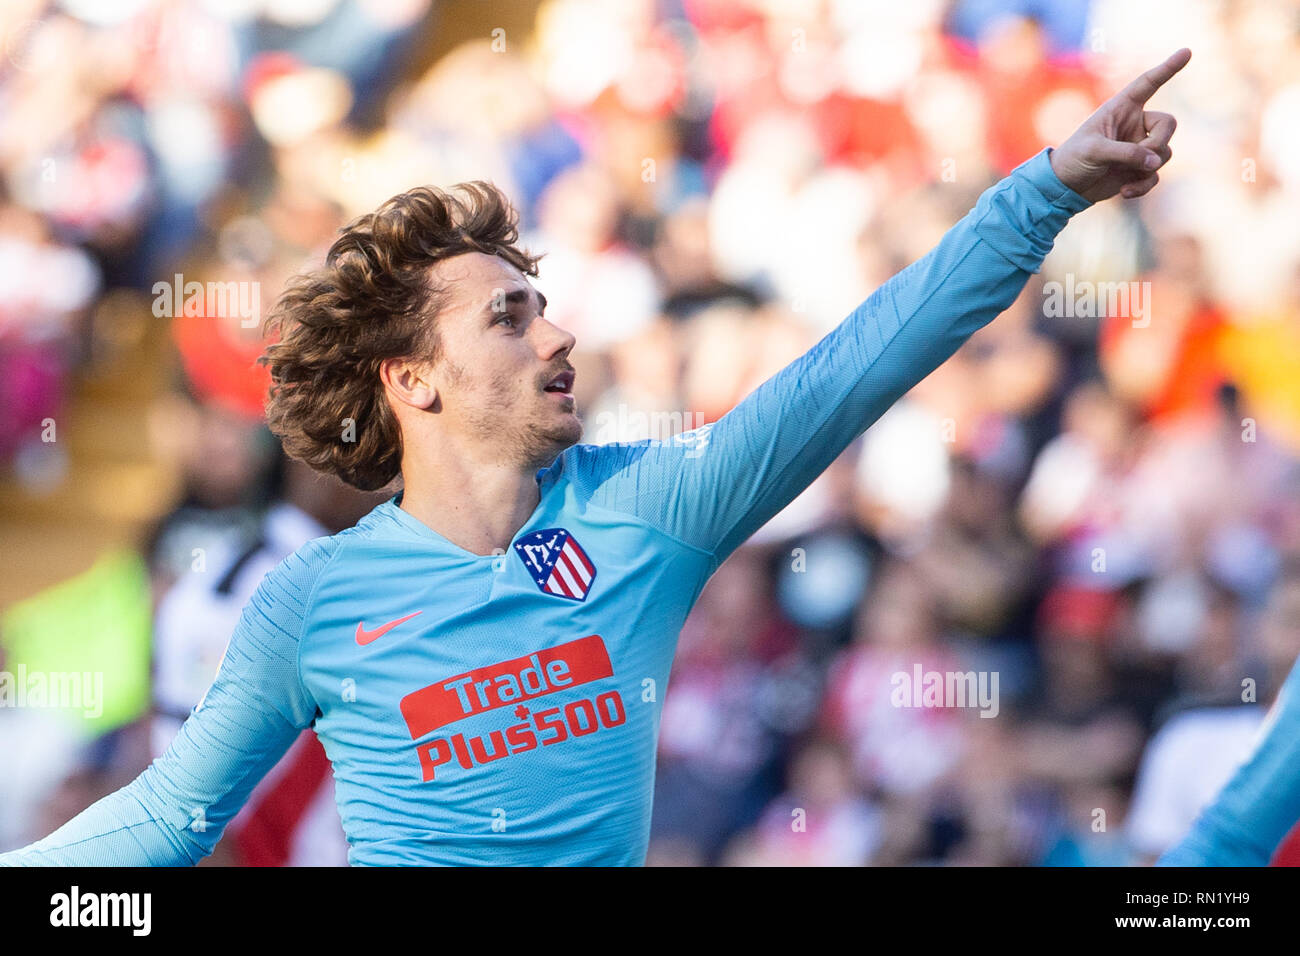 Antoine Griezmann of Atletico Madrid during the match between Rayo Vallecano vs Atletico Madrid of La Liga, date 24, 2018-2019 season. Stadium of Vallecas,  Madrid, Spain - 16  FEB 2019. - Stock Image